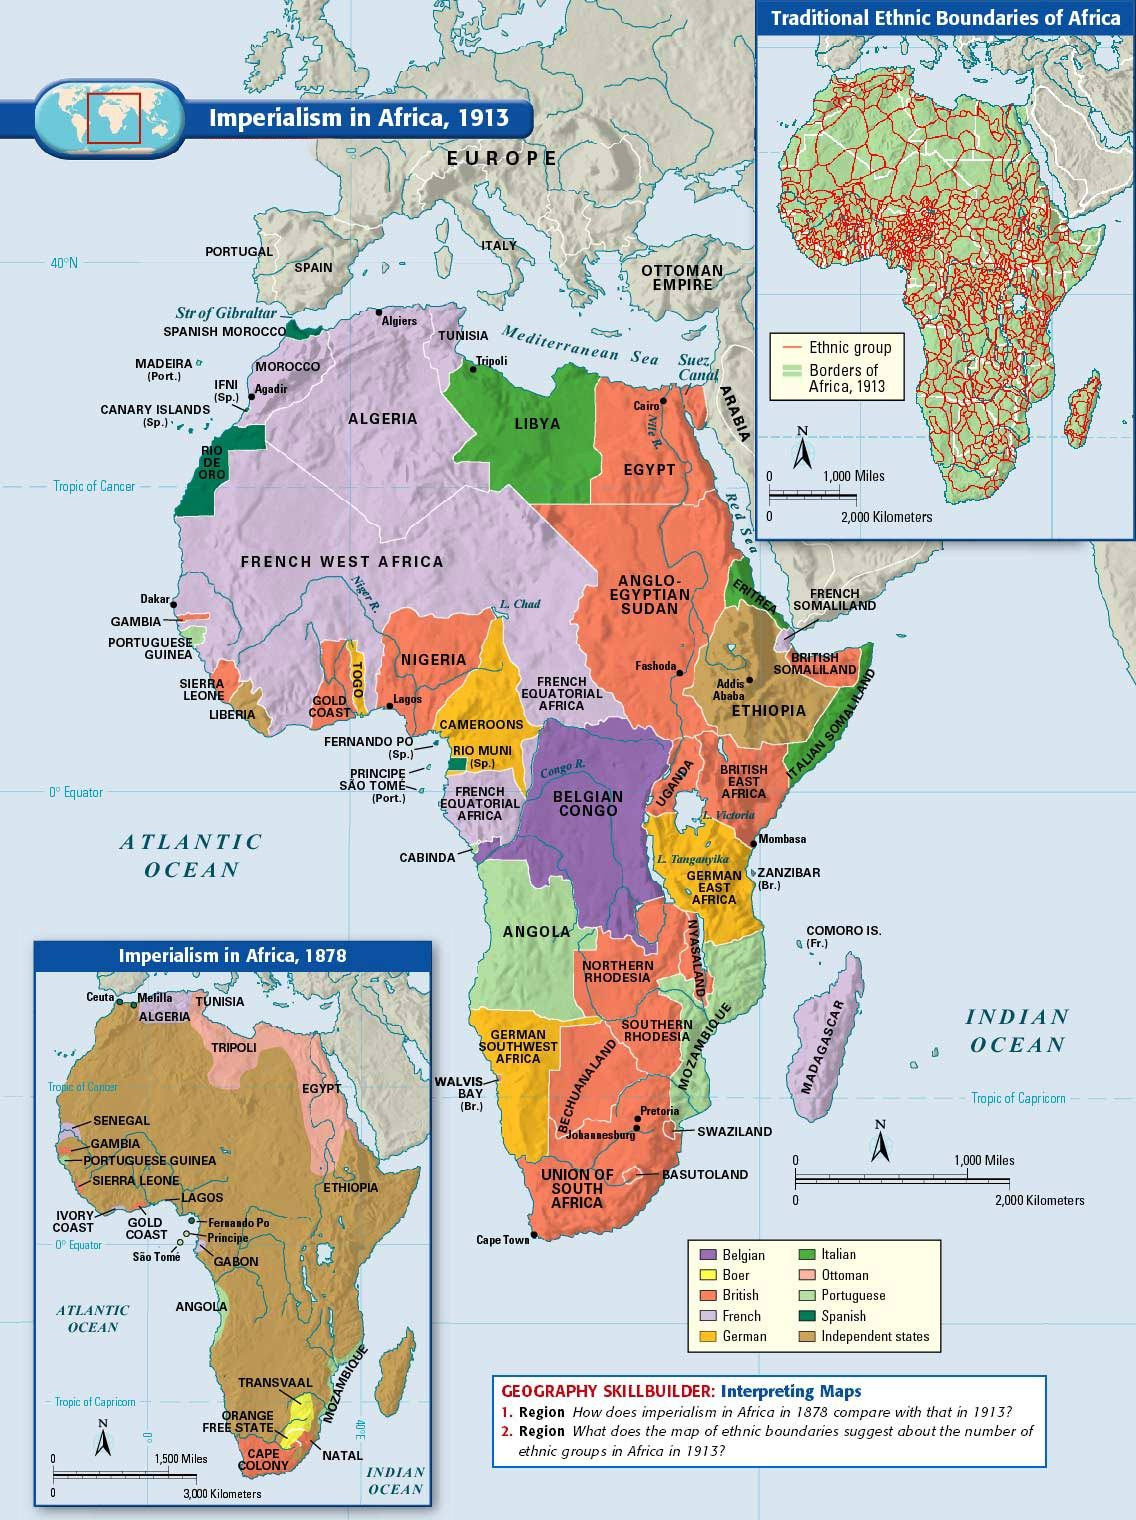 Map Of Africa During Imperialism.Imperialism In Africa 1913 Africa Map Historical Maps Map